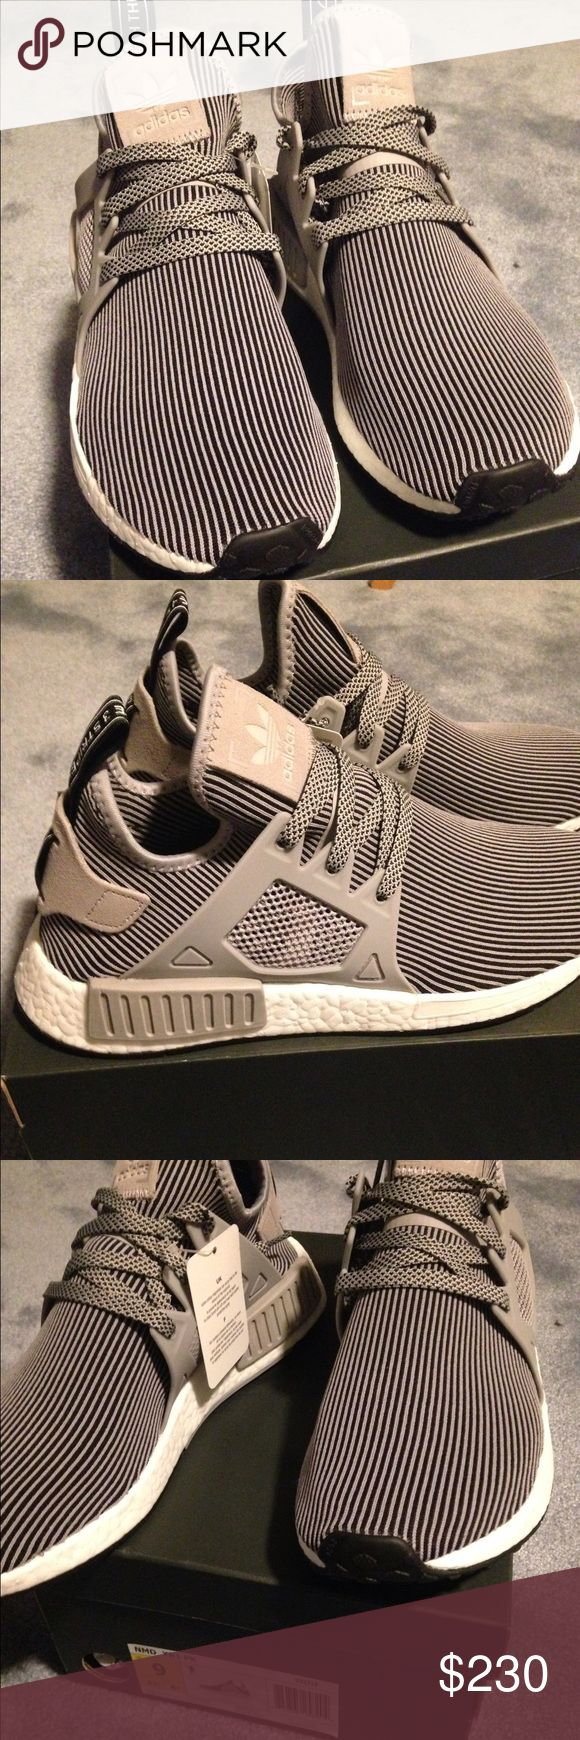 nmd_XR1 primeknit men's shoes Brand new & 100% Authentic Adidas Shoes Sneakers